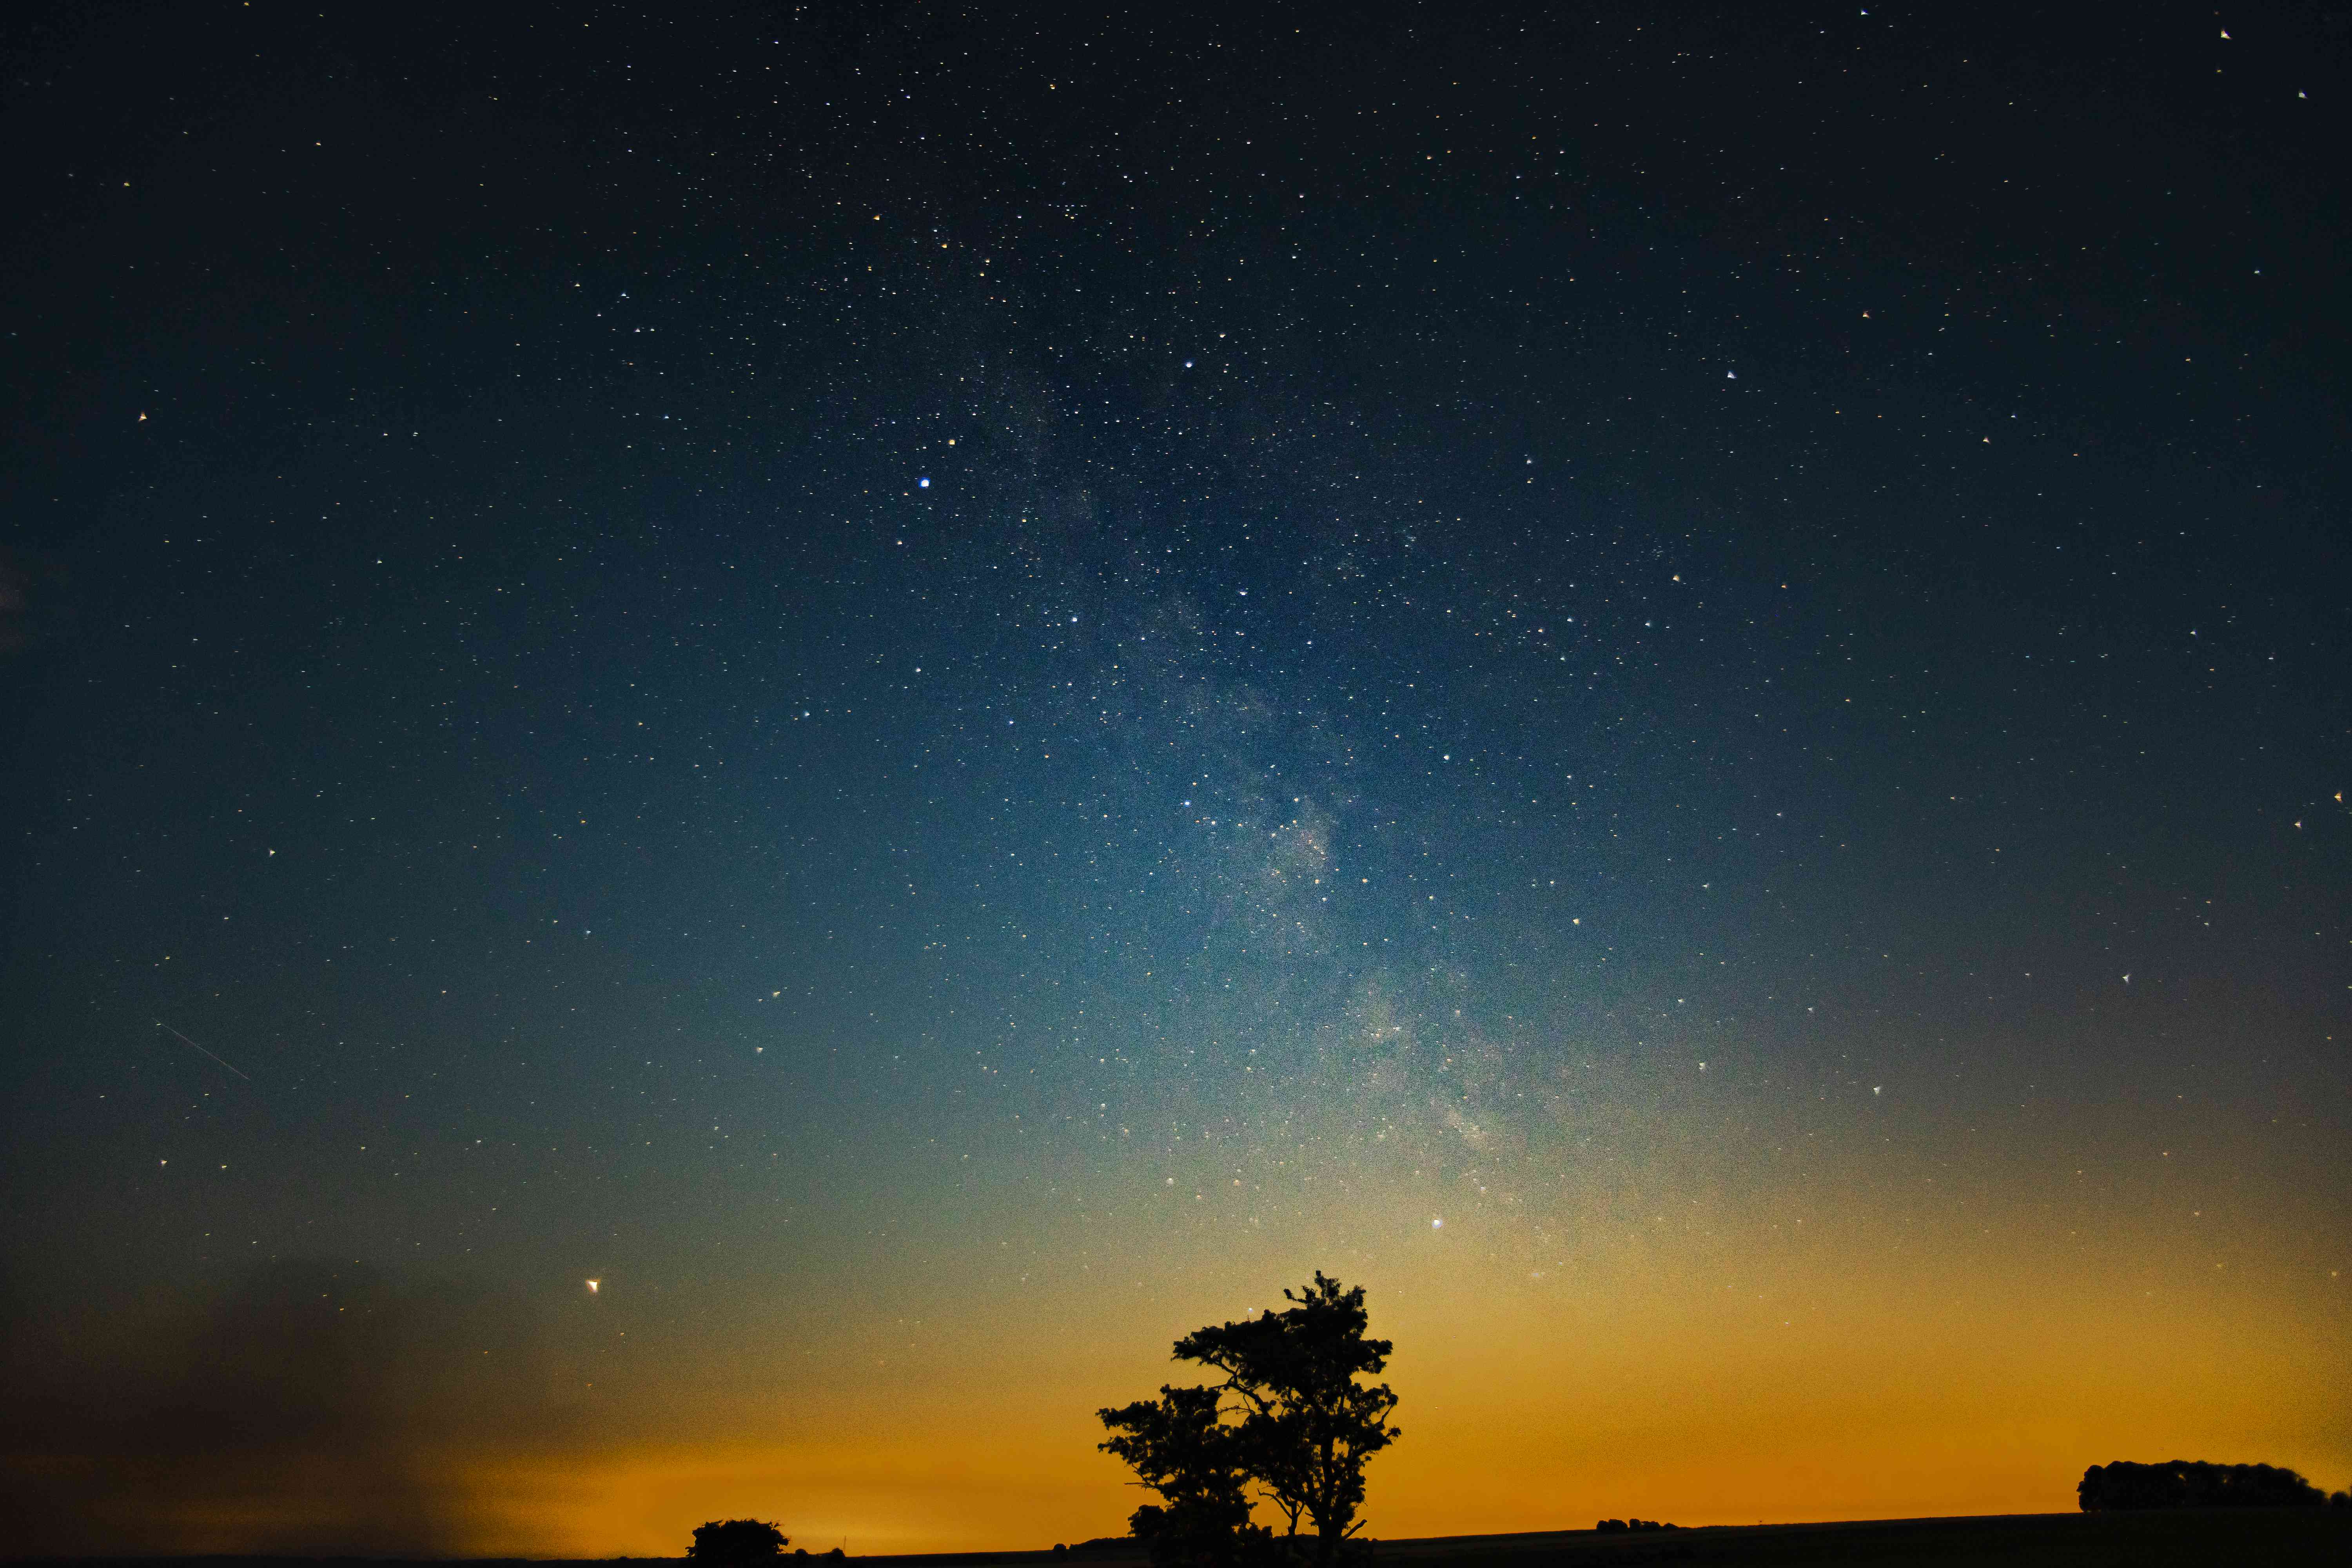 Milky Way in orange and blue sky over tree silhouettes